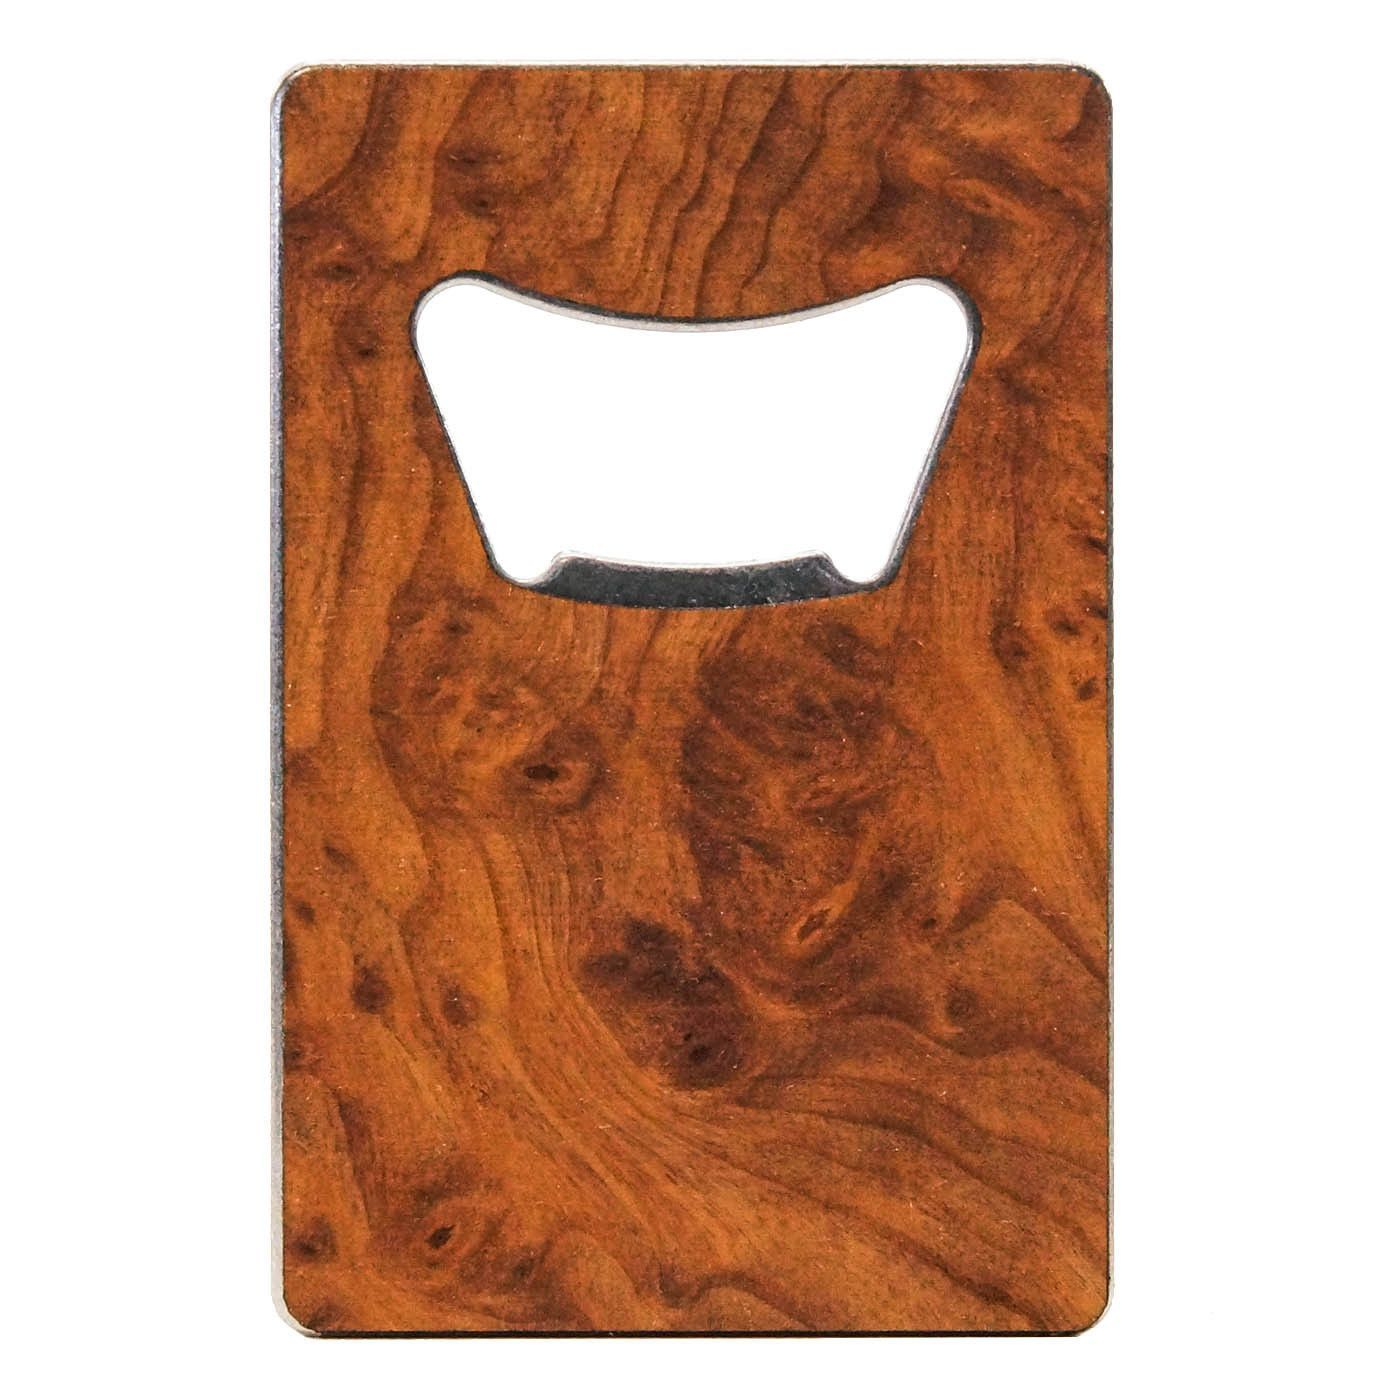 Premium Wood Credit Card Bottle Opener Credit Card Bottle Opener